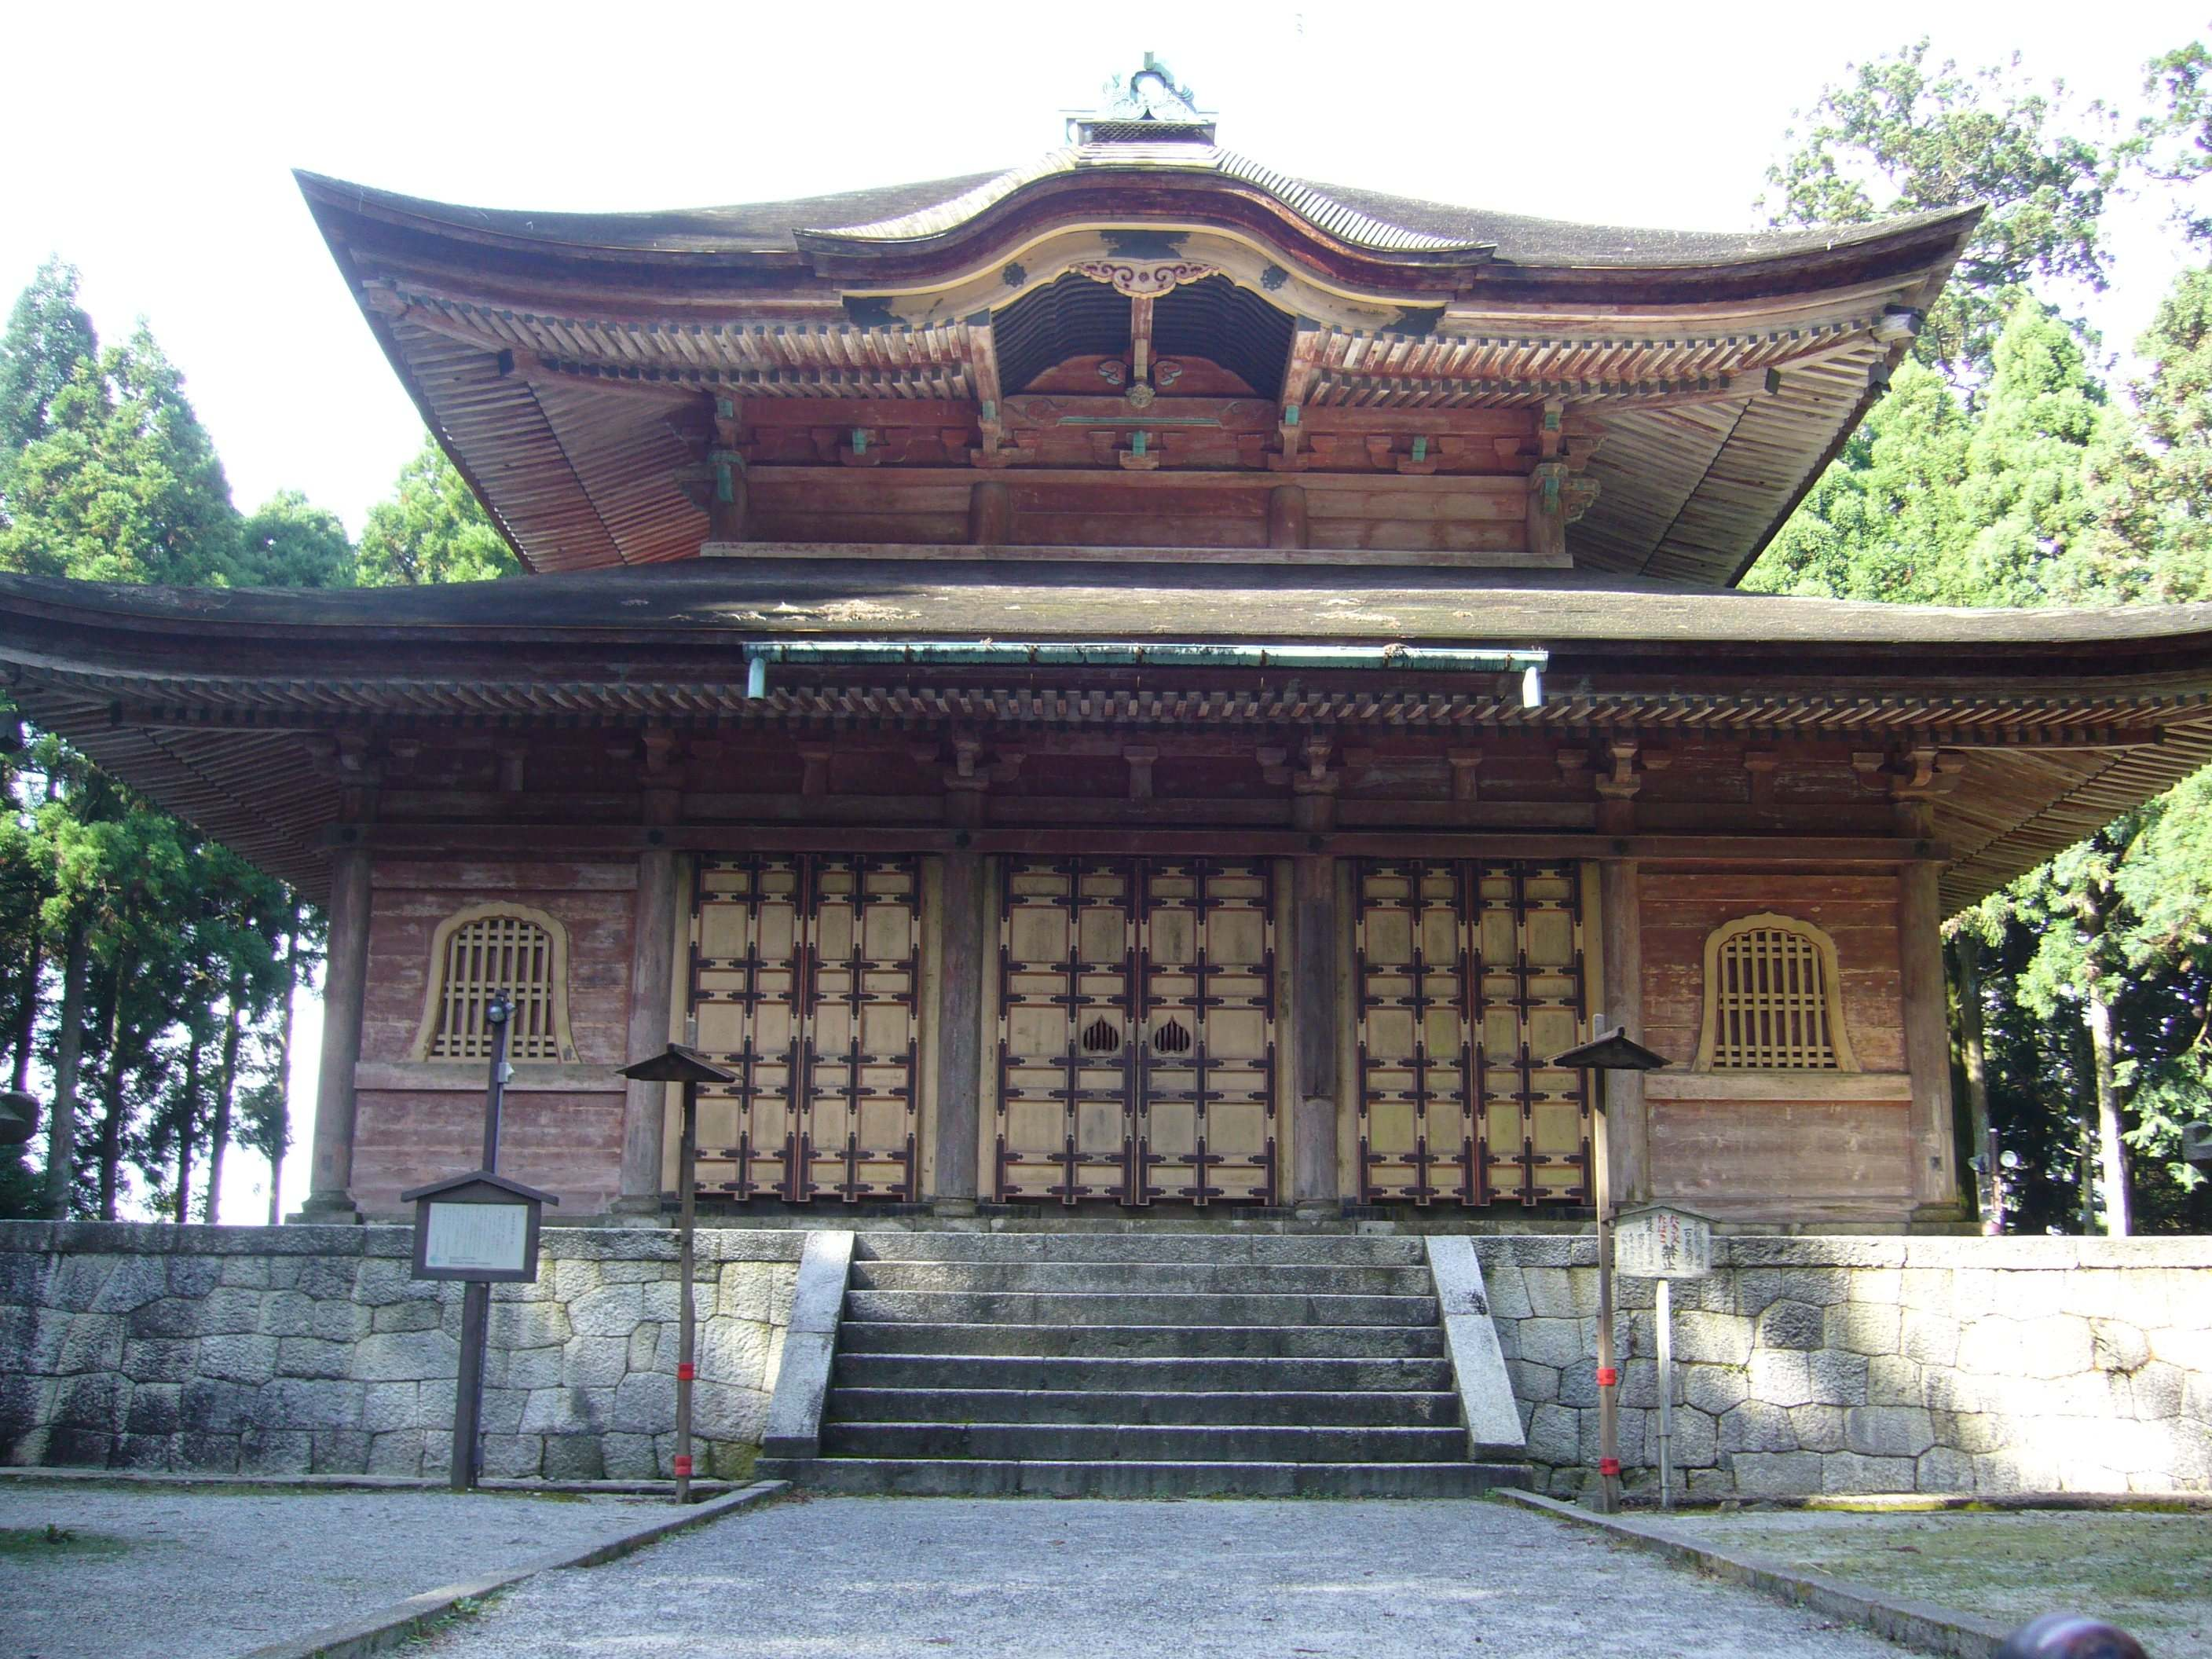 Old temple at Enryakuji on Mt. Hiei in Kyoto. Photo by Doug Berger, September 2007. Click the photo to send an e-mail.